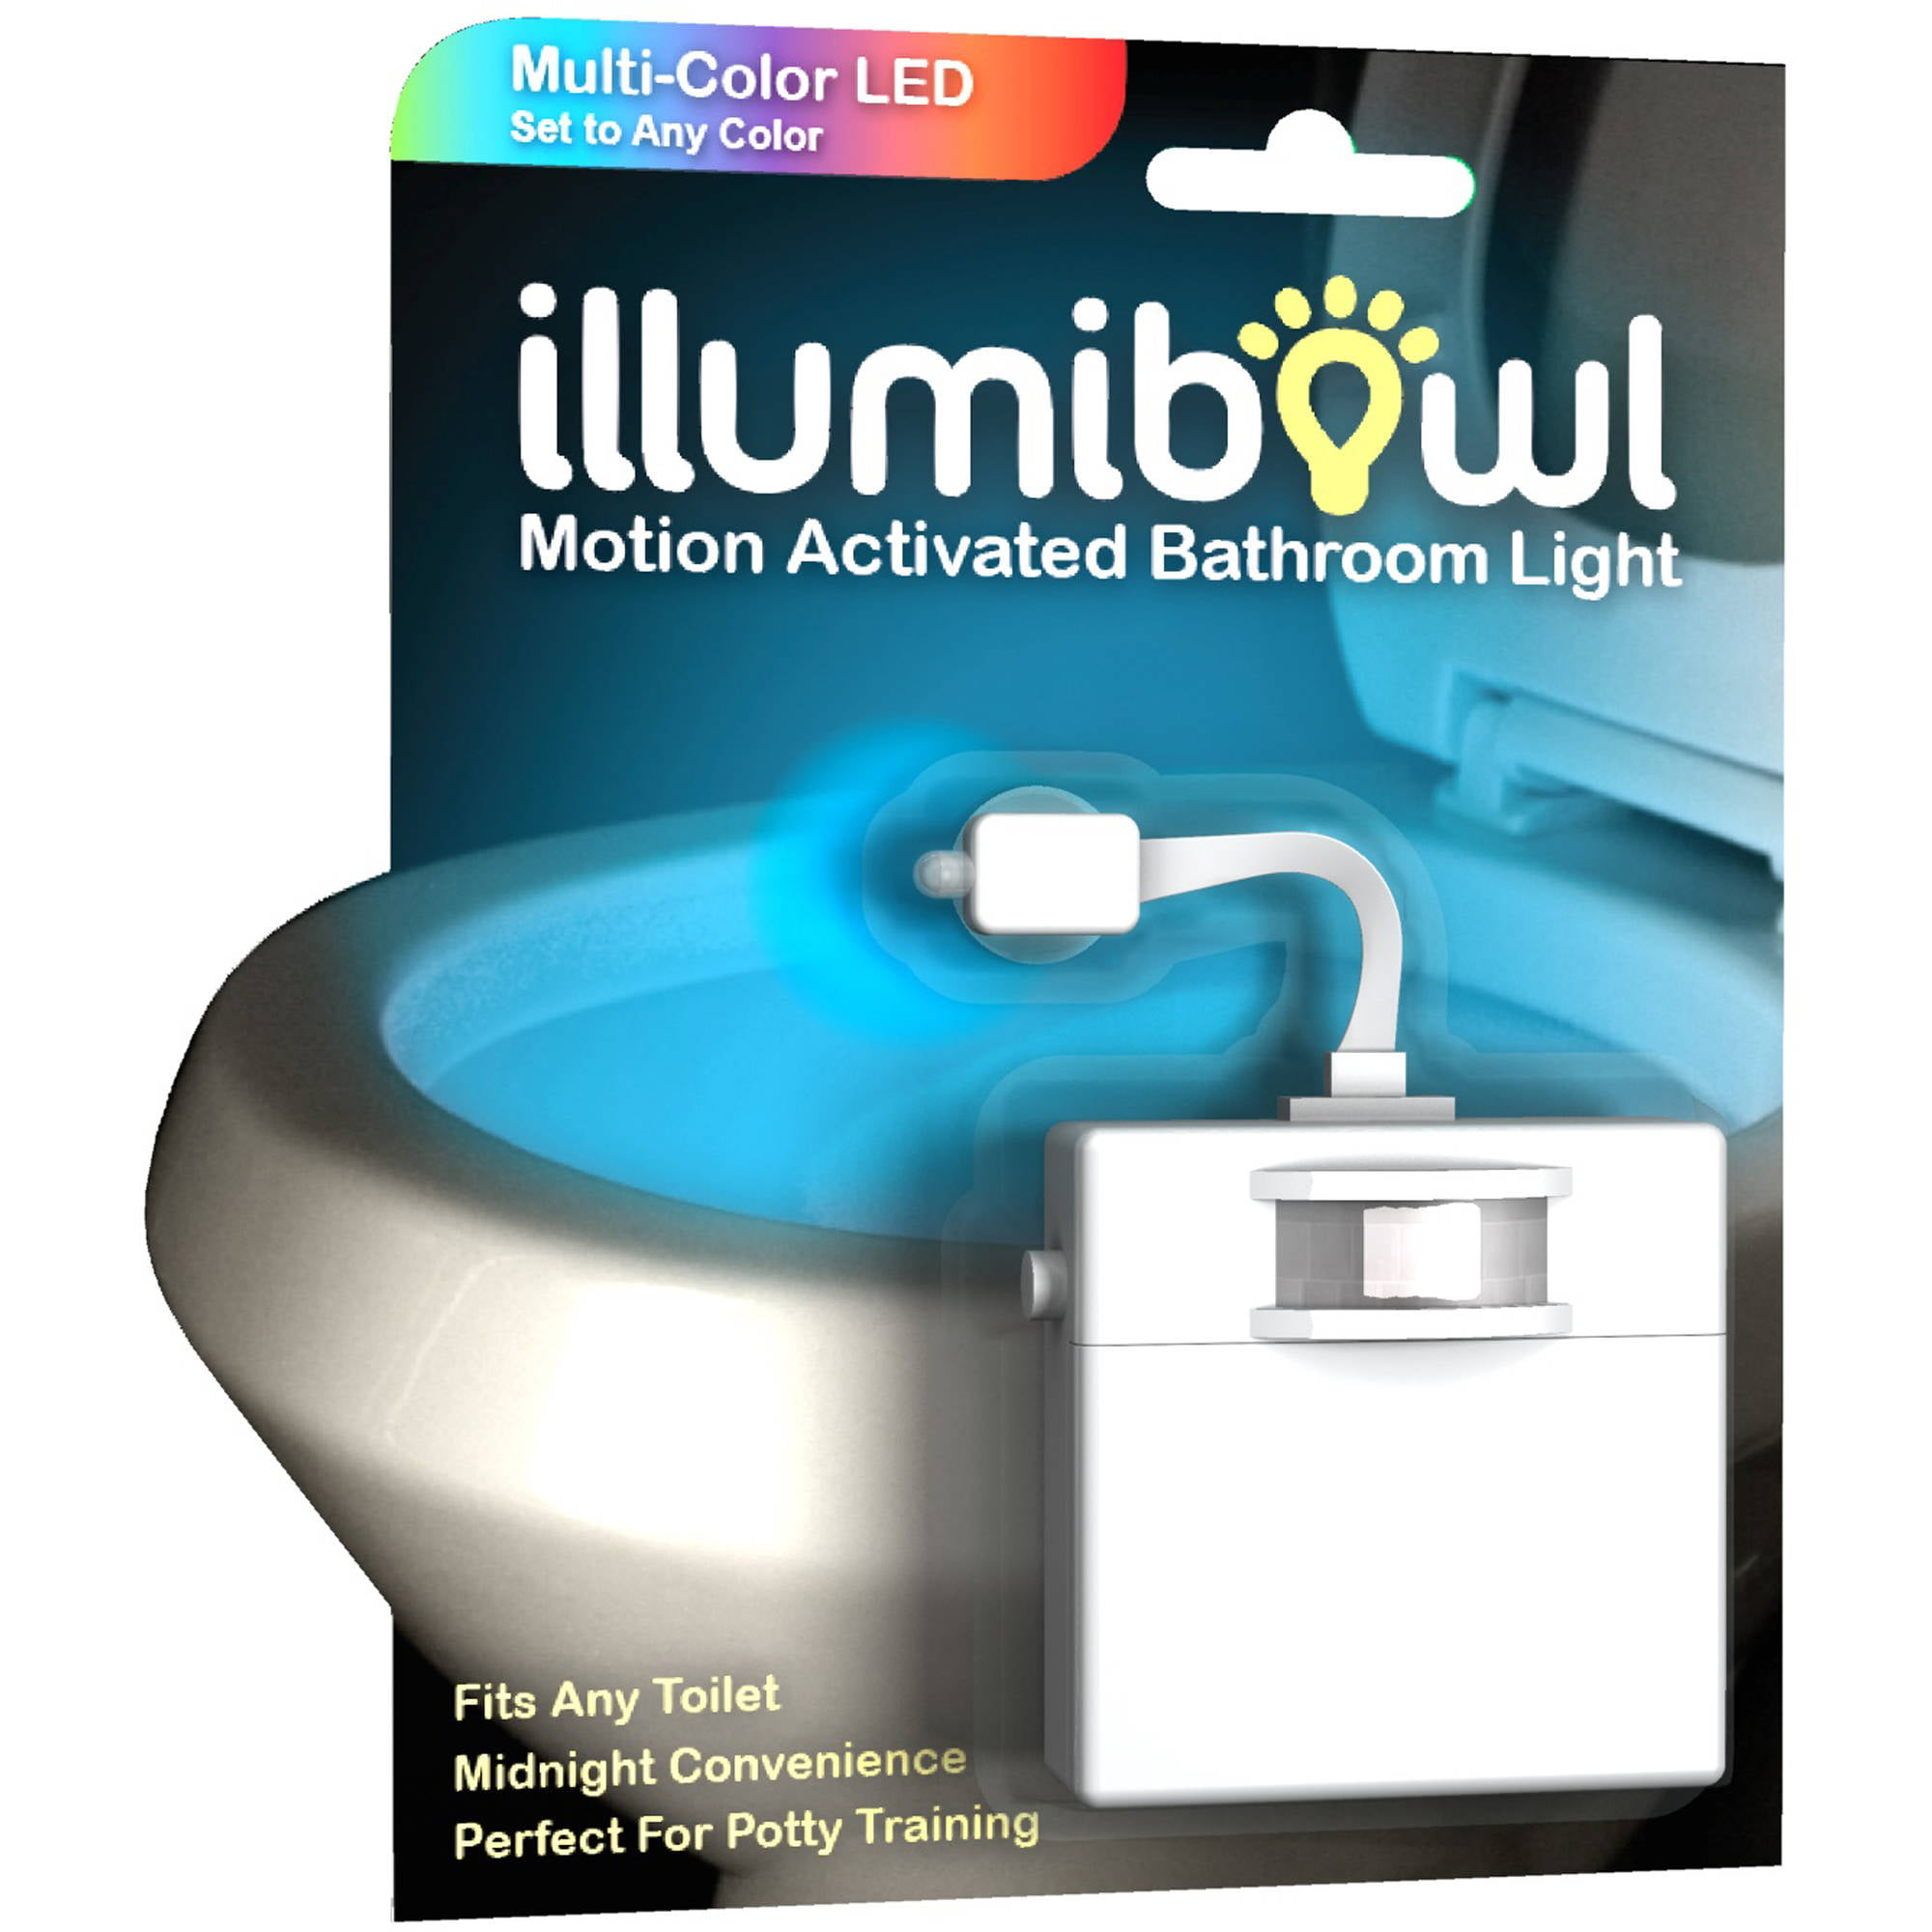 Bathroom Light Fixtures At Walmart illumibowl motion-activated bathroom toilet night light - walmart